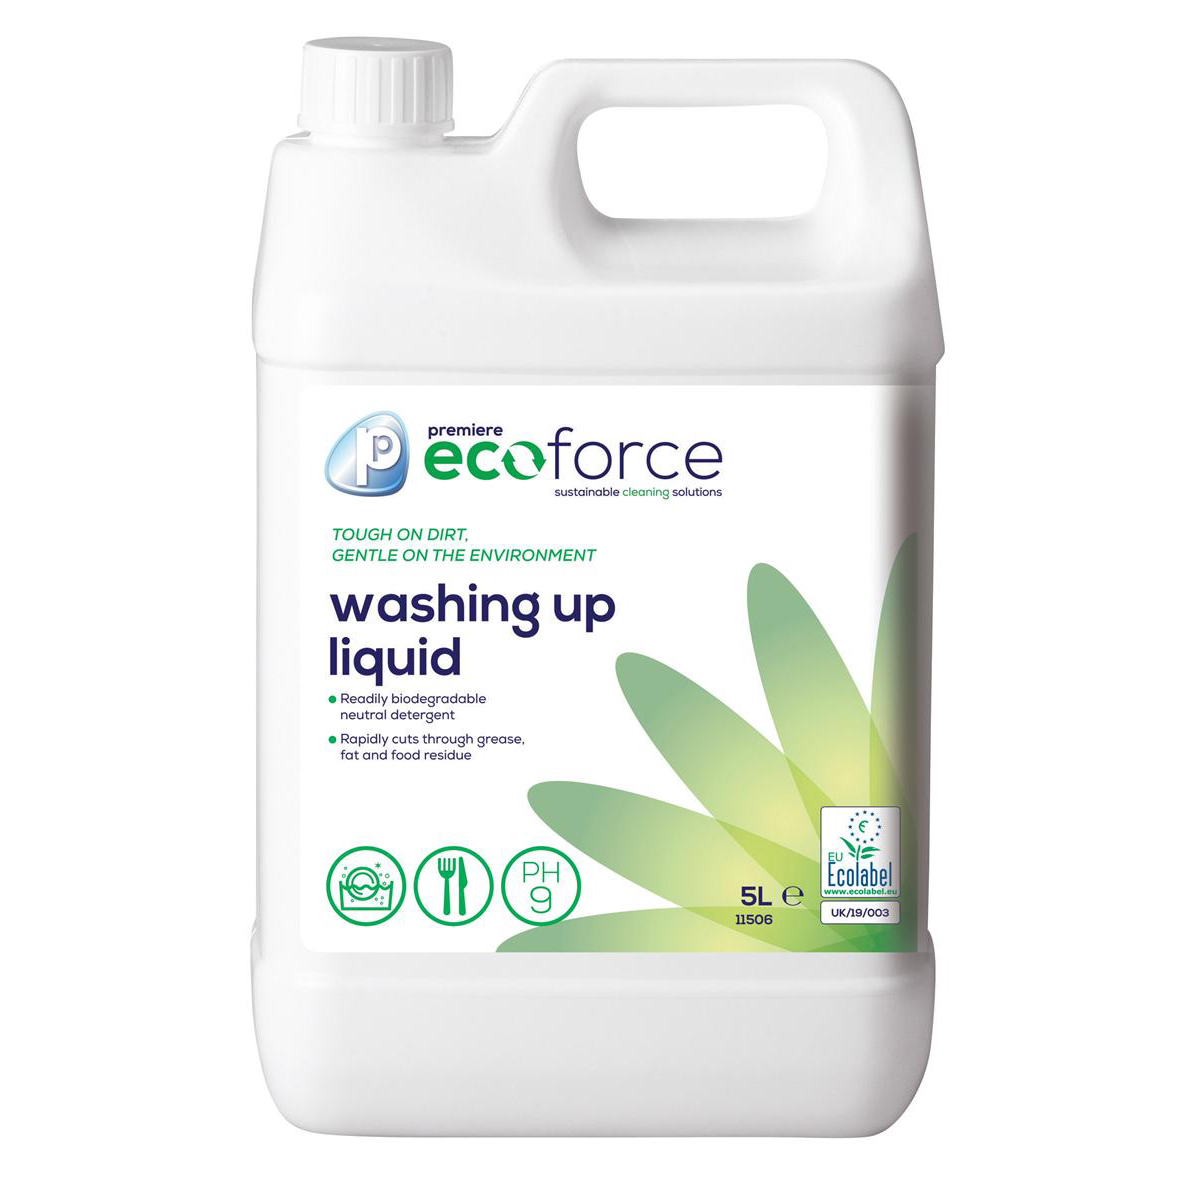 Ecoforce Washing-Up Liquid 5 Litre Ref 11506 Pack 2